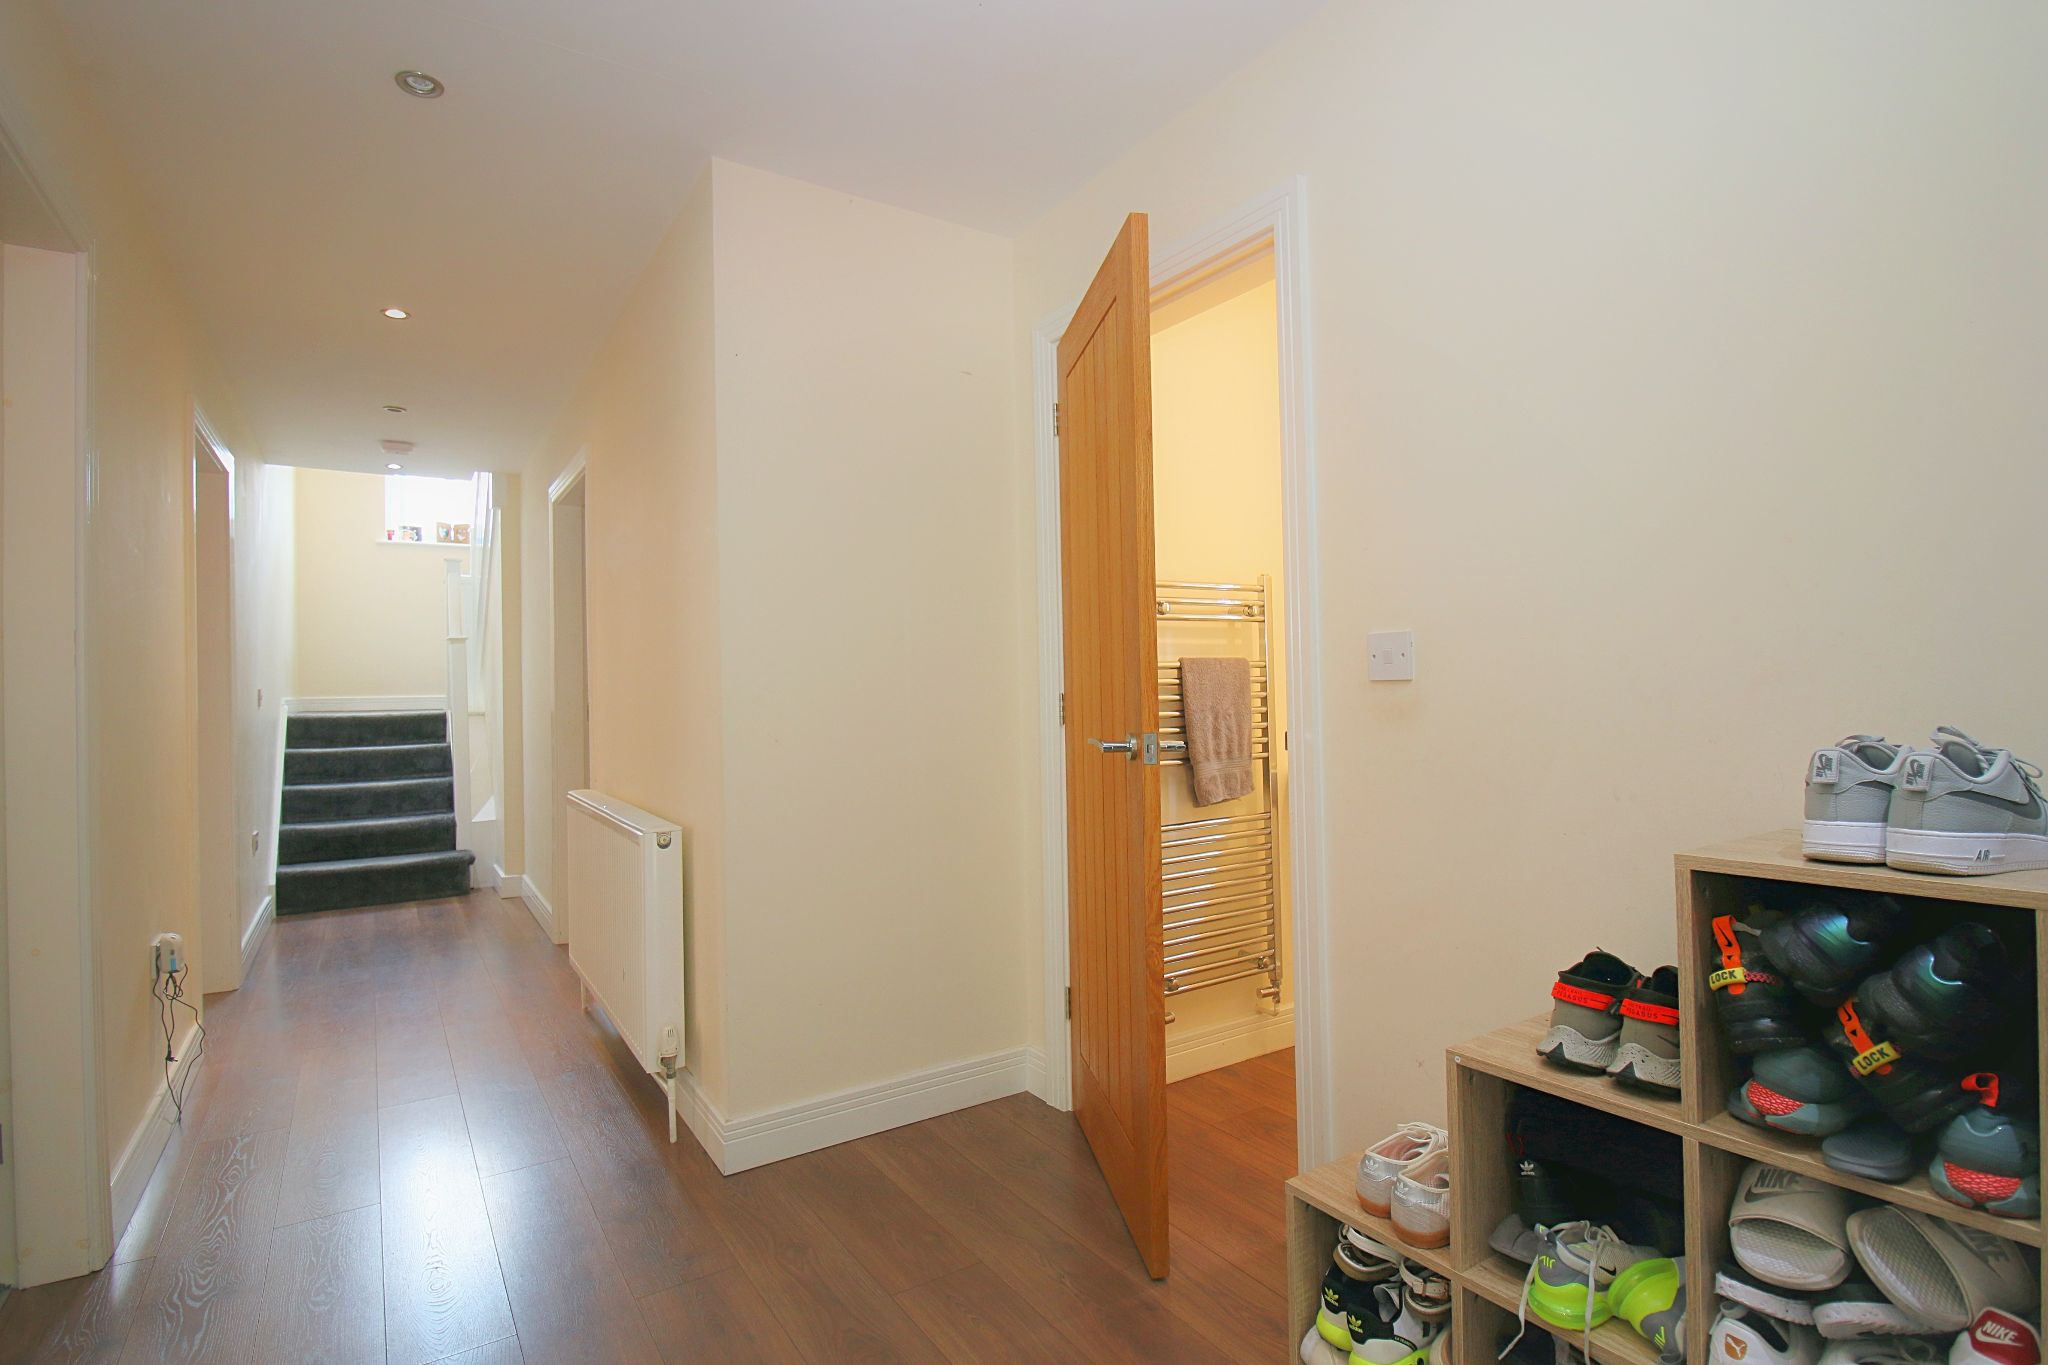 6 Bedroom Detached House For Sale - Photograph 12